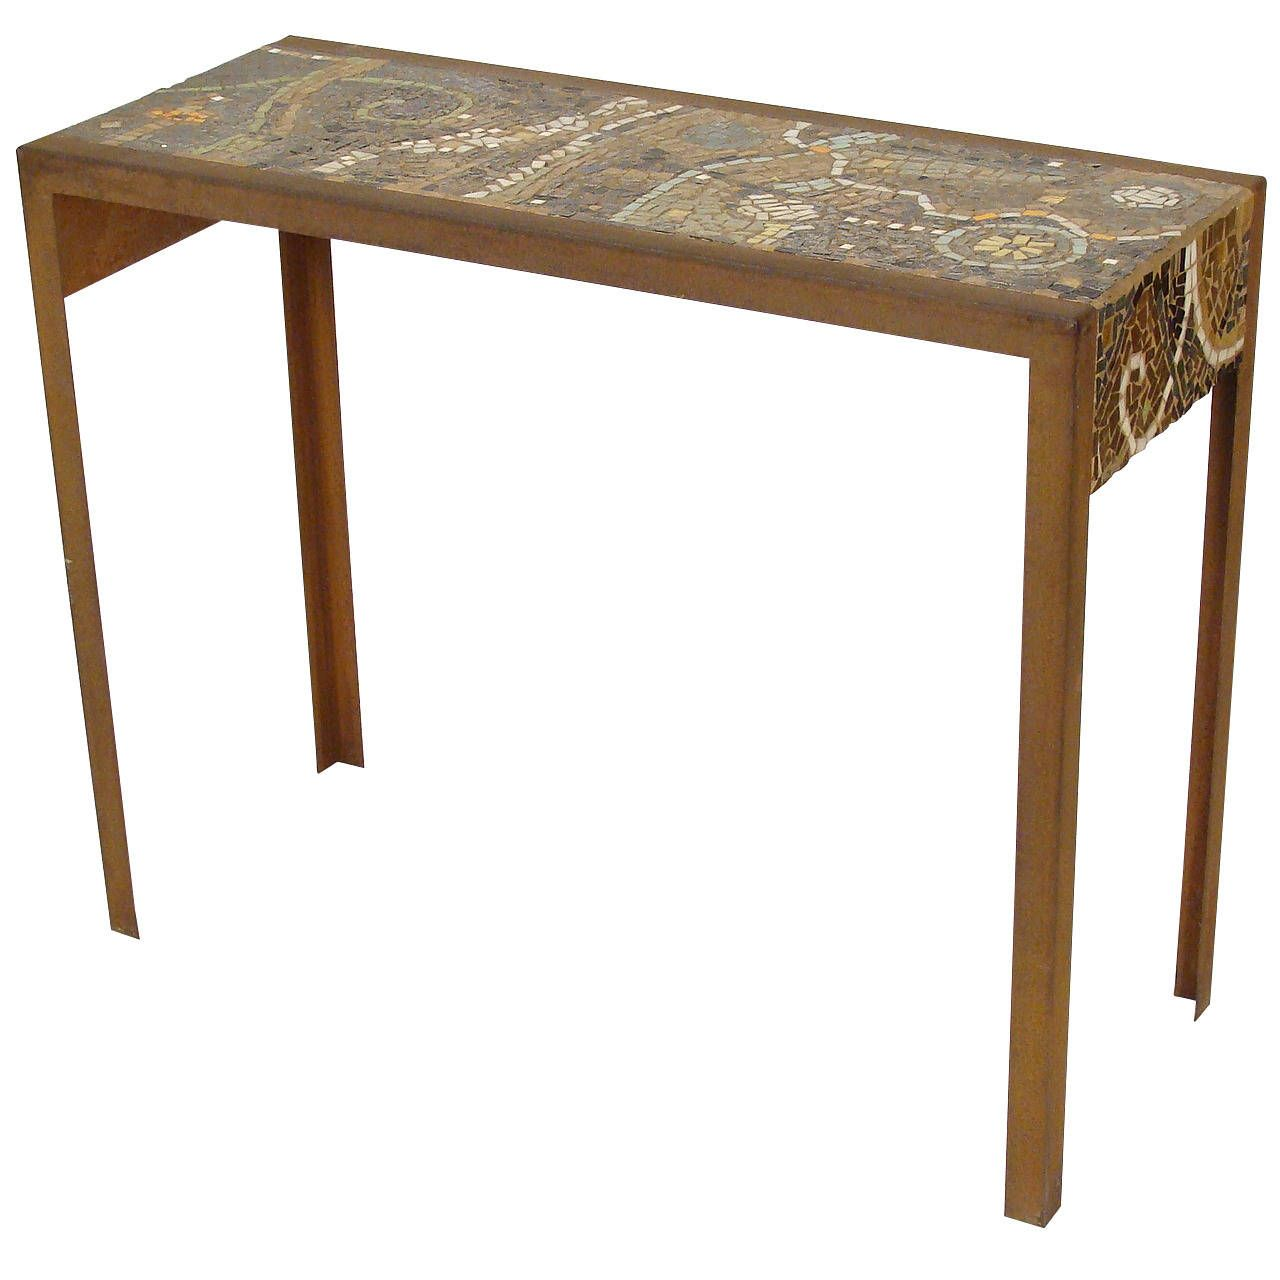 Superior Mosaic Tile Top Console Table | From A Unique Collection Of Antique And  Modern Console Tables